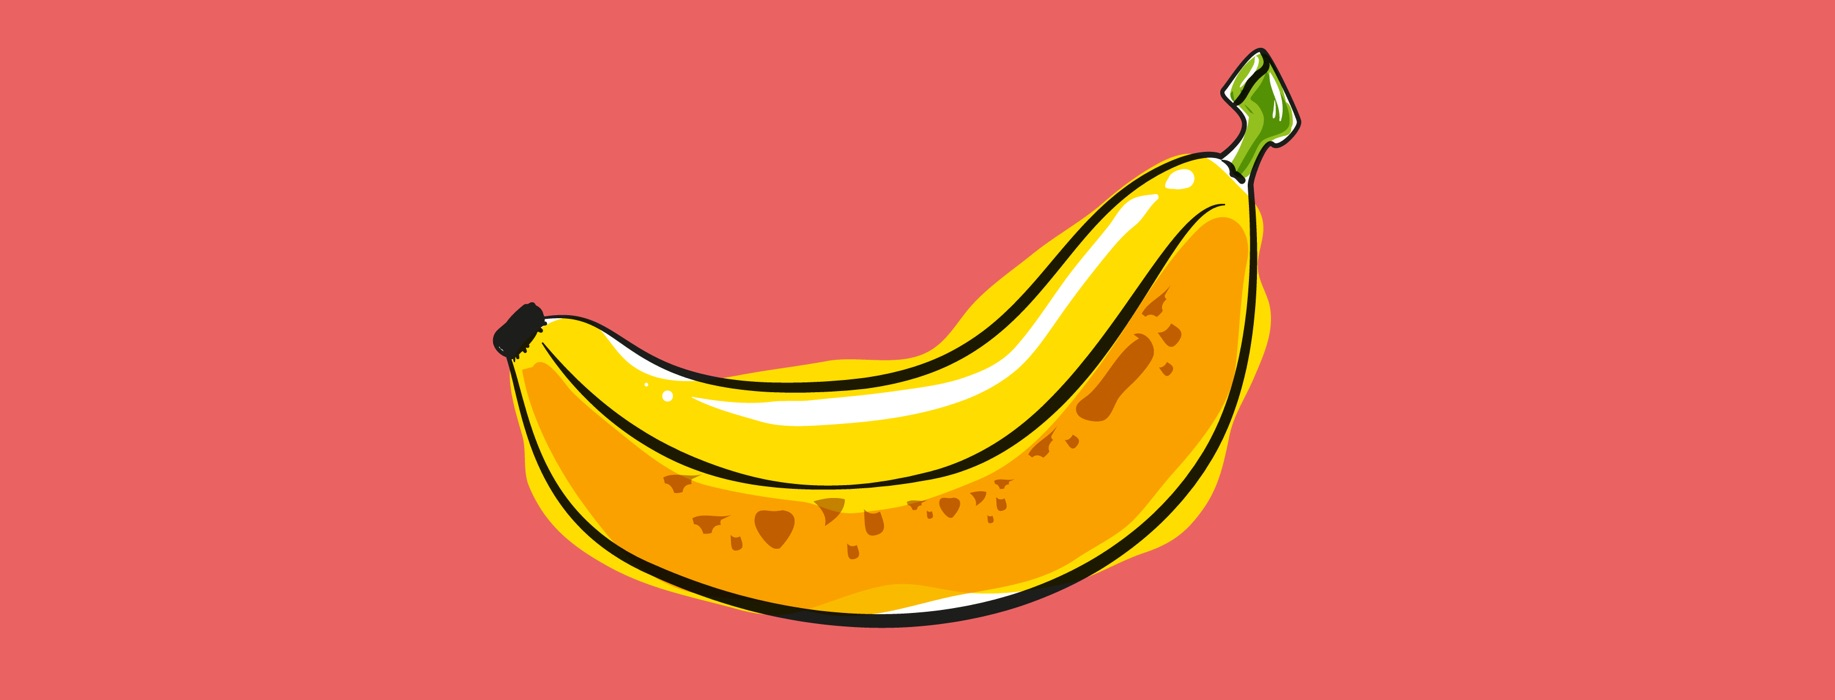 banana-representing-male-reproductive-system